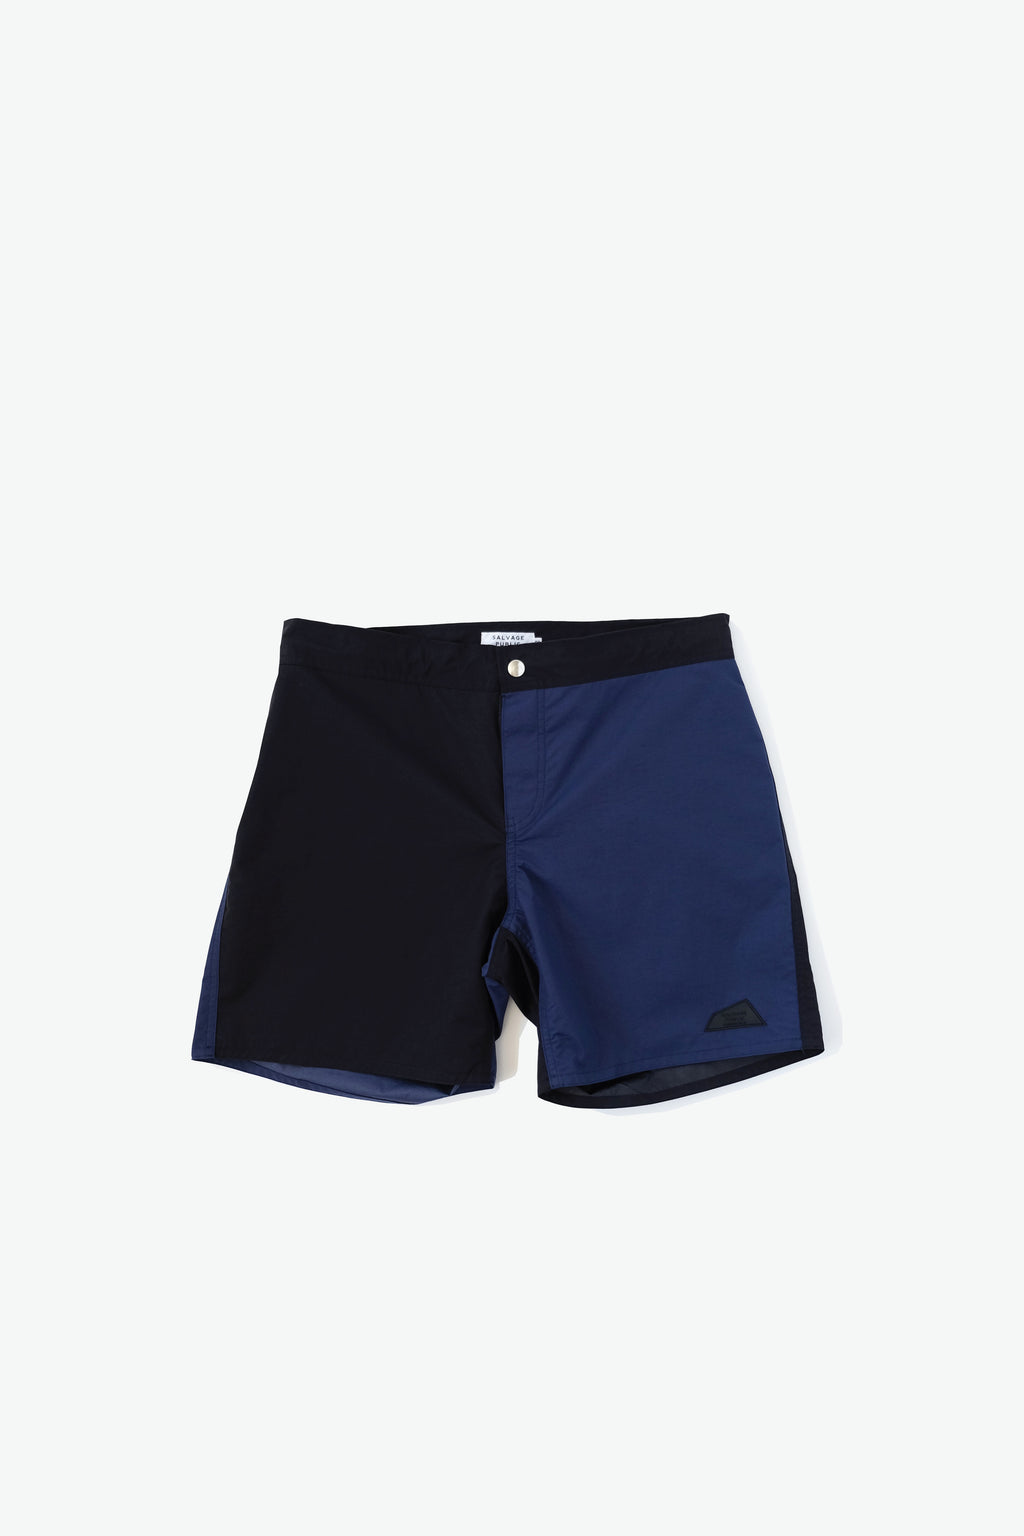 Shorts - Koko Boardshort, Quad - Black & Navy